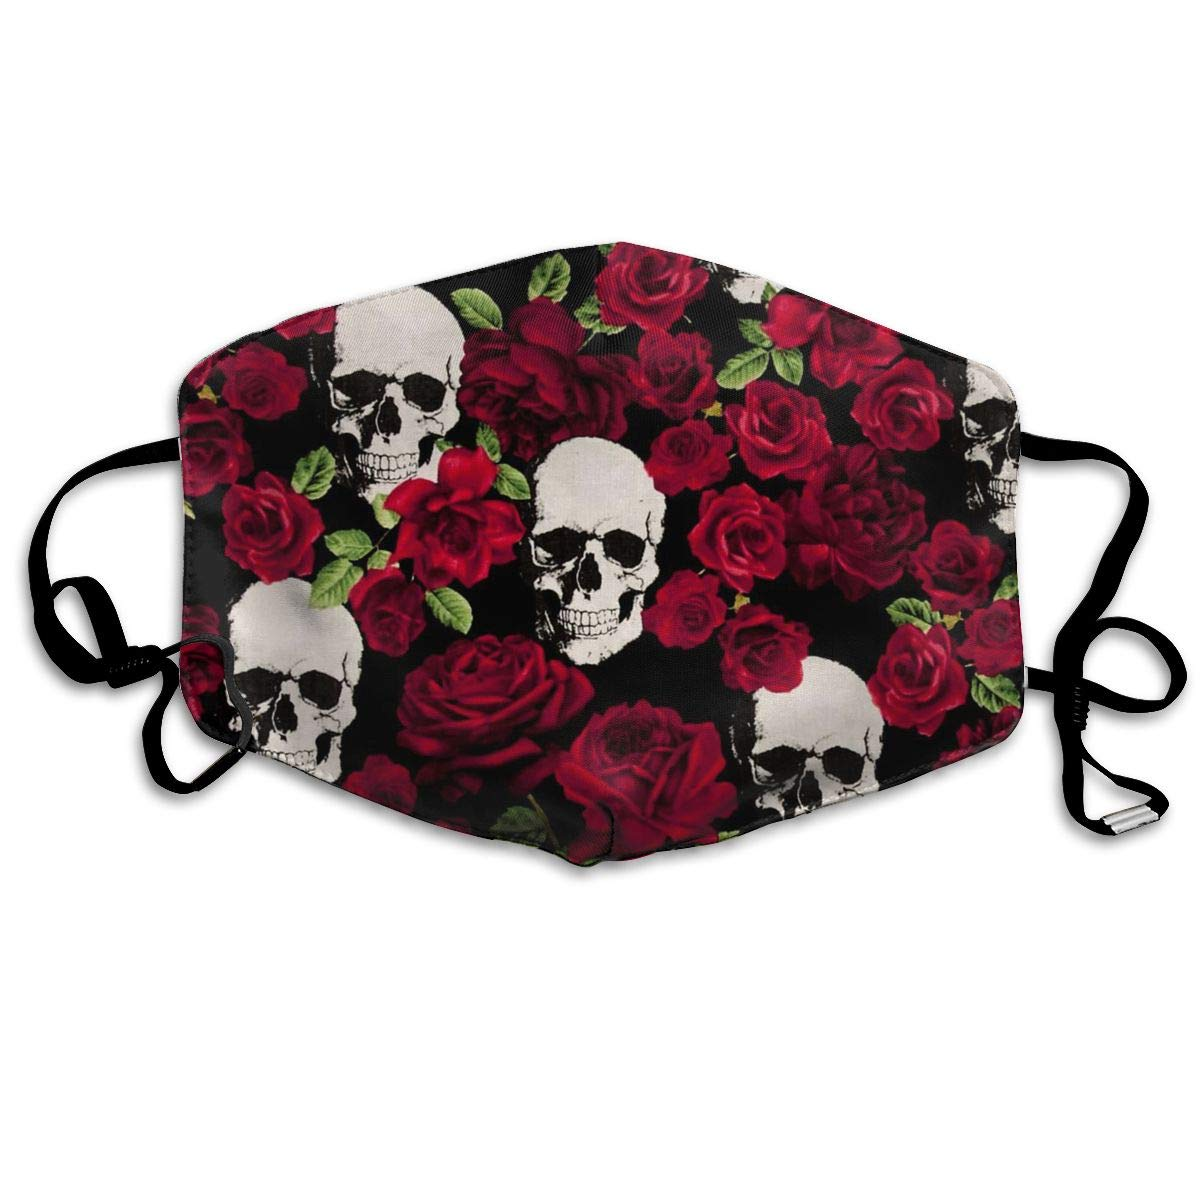 TDynasty Unisex Mouth Mask Fashion Rose Skull Surgical Masks Half Face Earloop for Outdoor Cycling by TDynasty